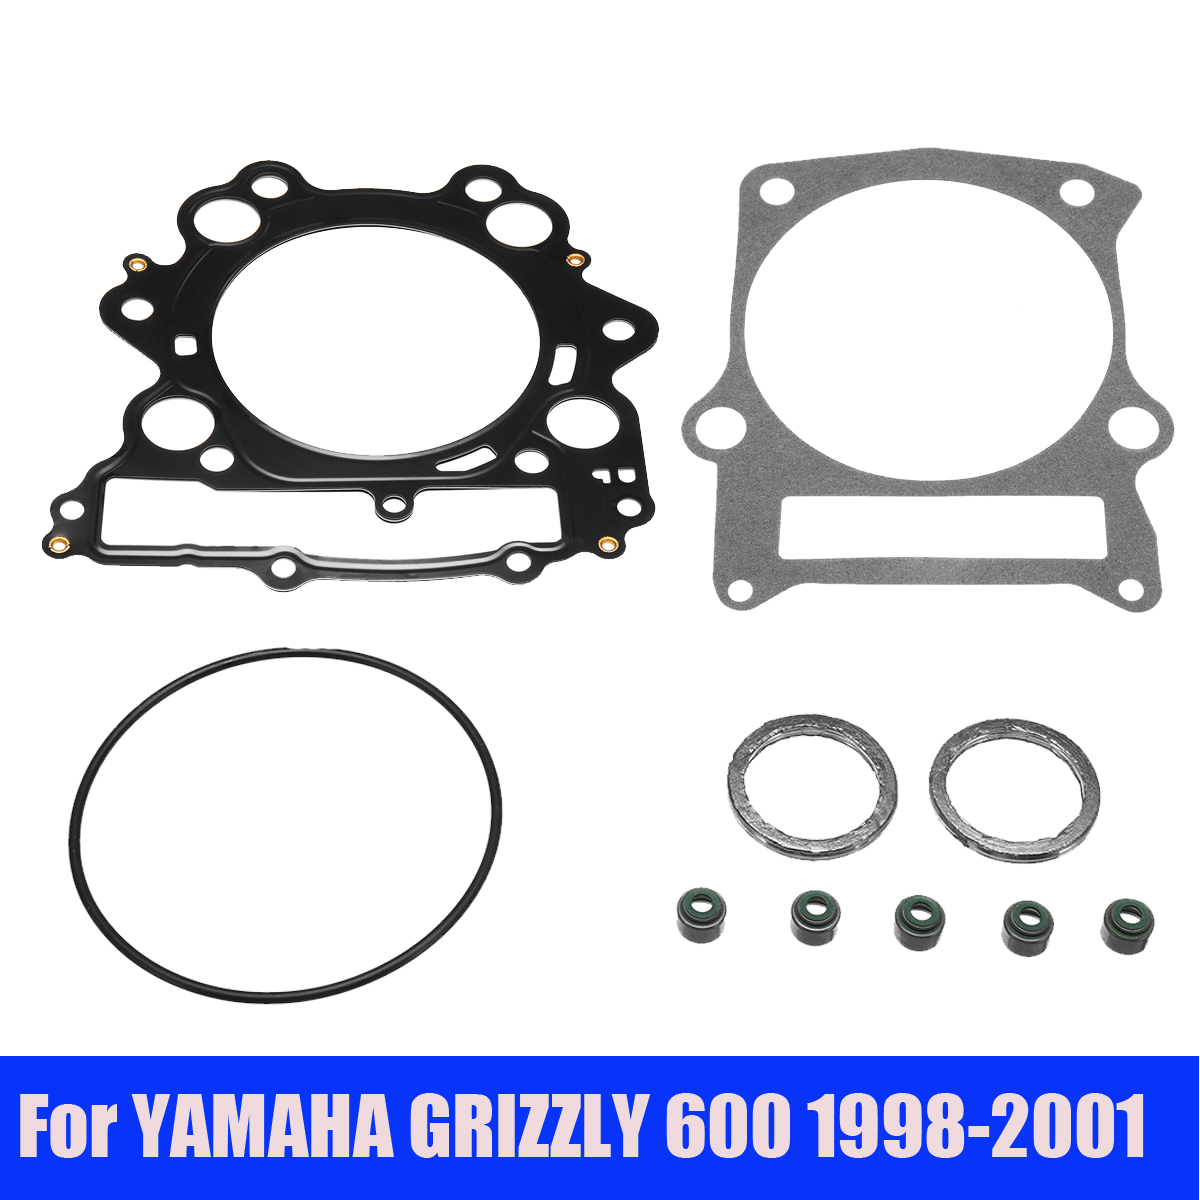 Top End Gasket Kit for Yamaha GRIZZLY 600 4x4 1998-2001